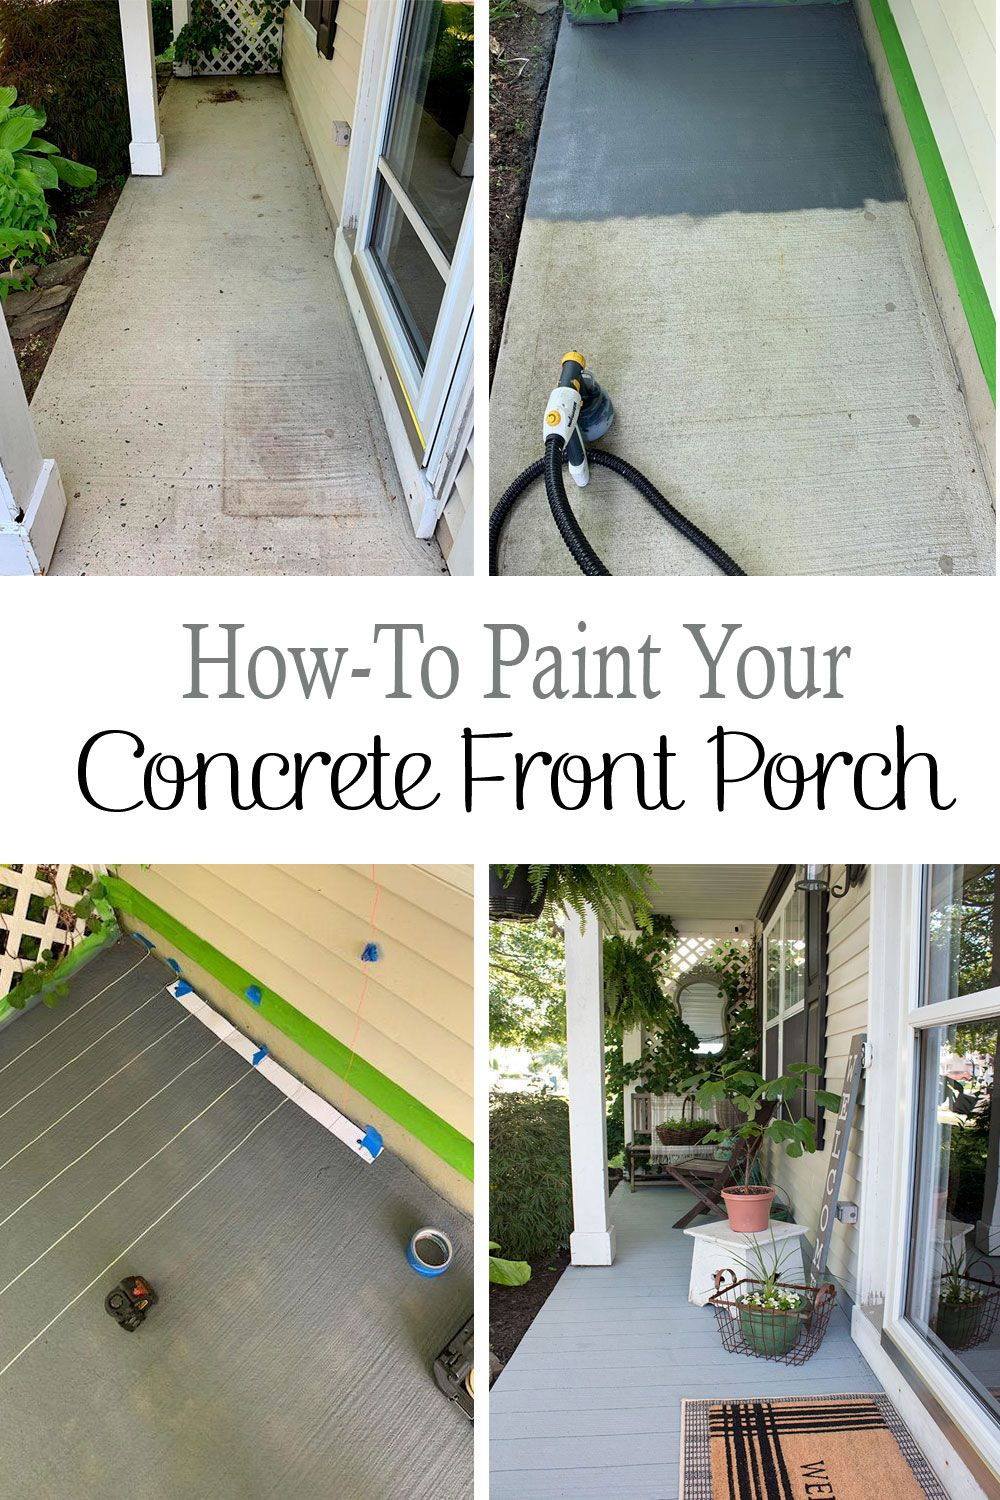 How To Paint A Porch Floor With Concrete Paint The Honeycomb Home Painted Concrete Porch Porch Flooring Concrete Porch